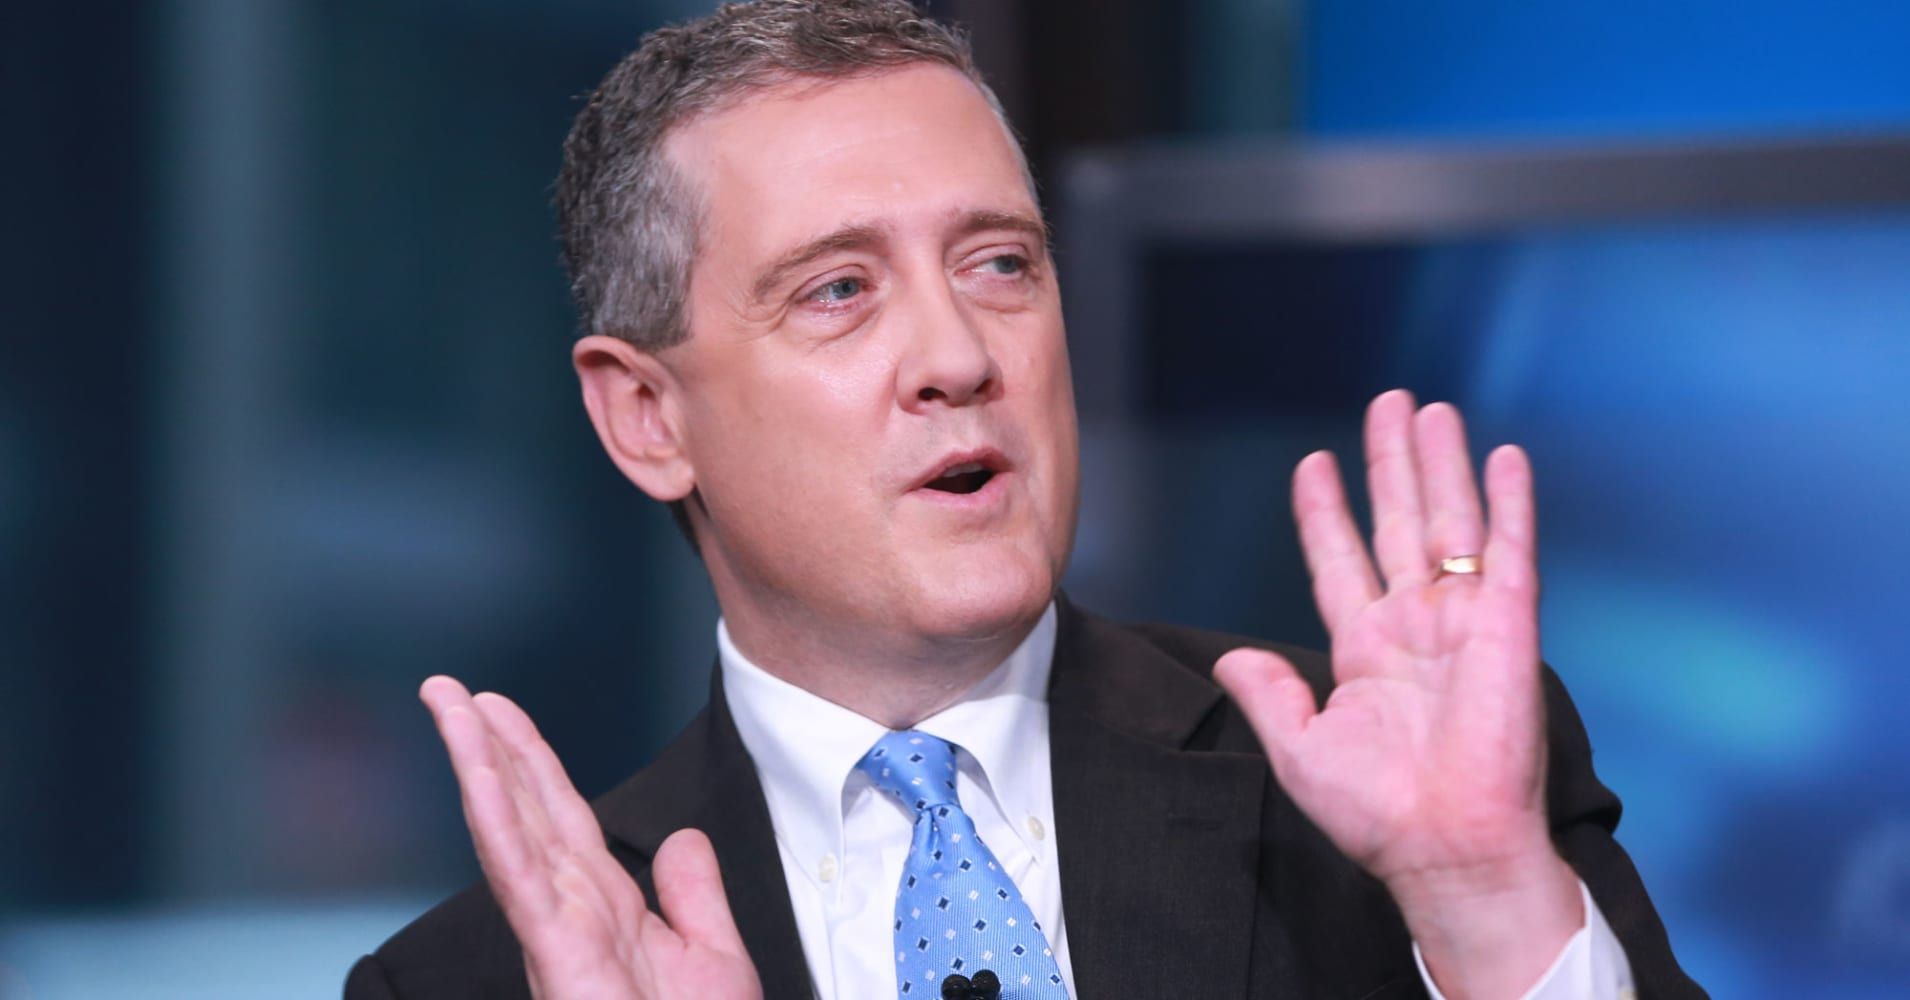 Fed's Bullard says he's okay with another rate hike this year